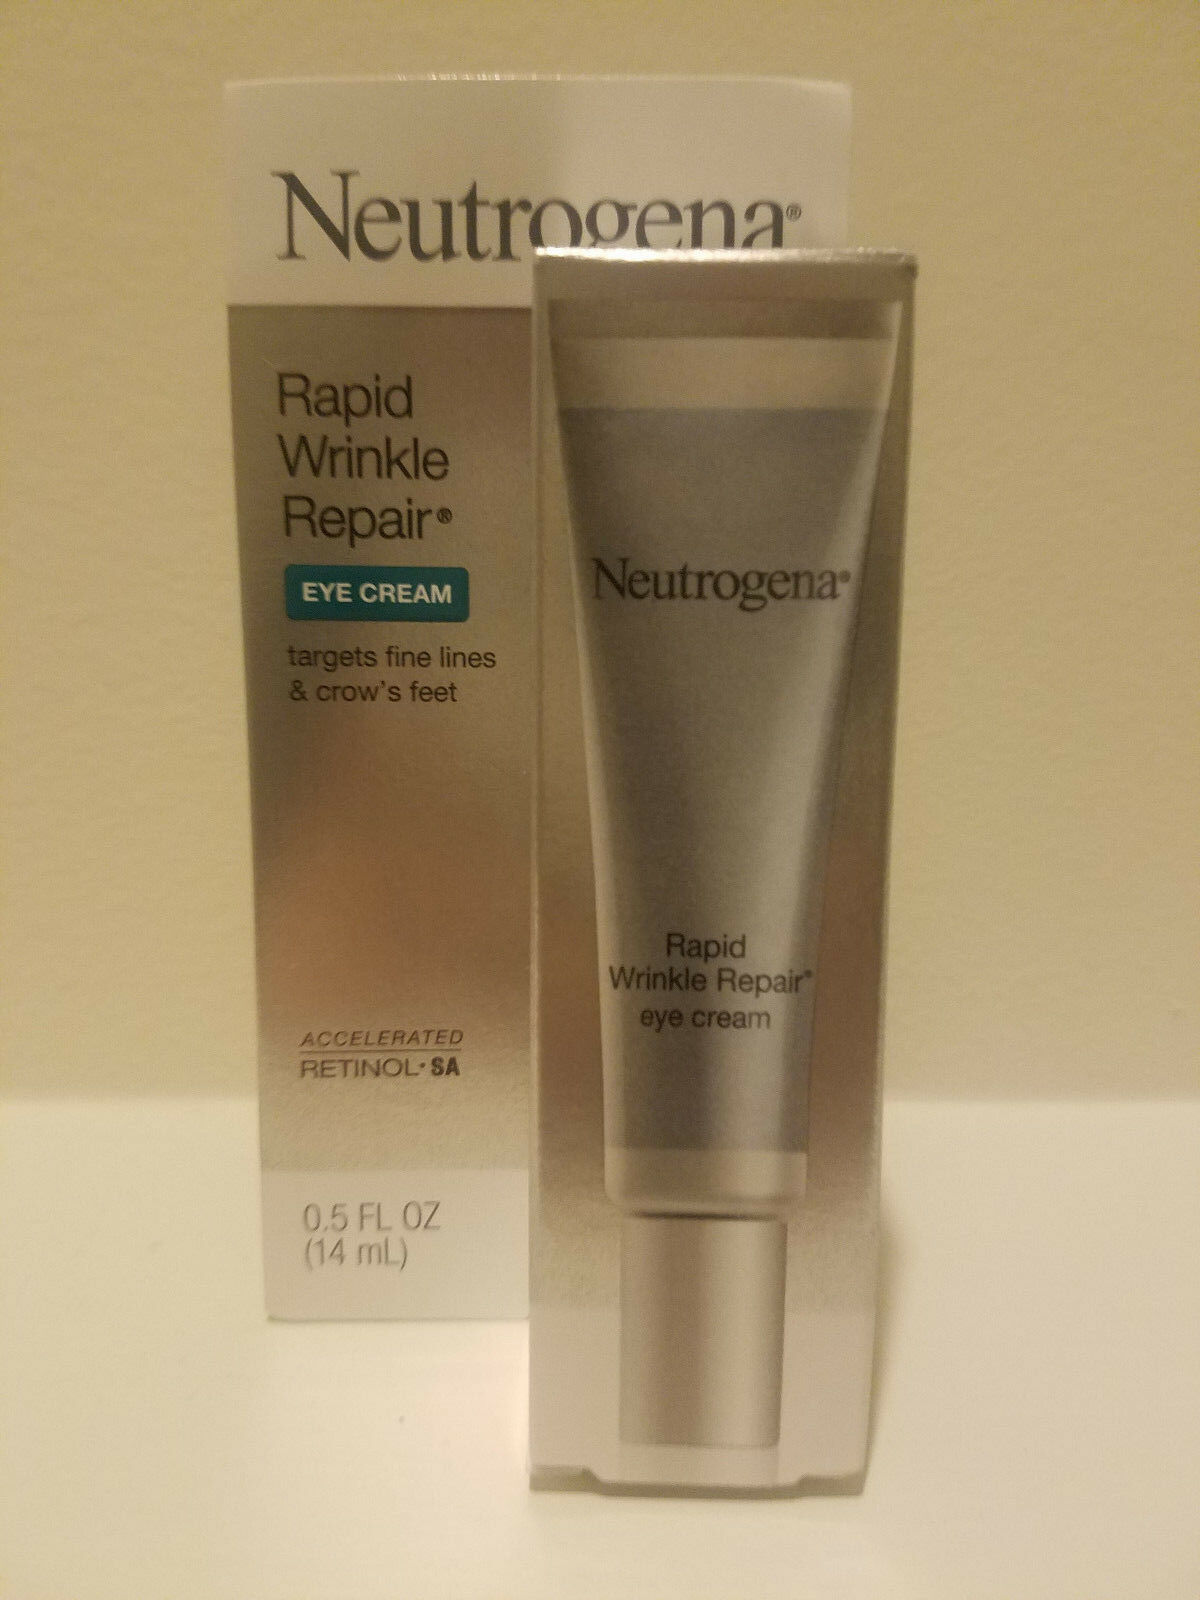 Neutrogena Rapid Wrinkle Repair Eye Cream 0.5 Oz